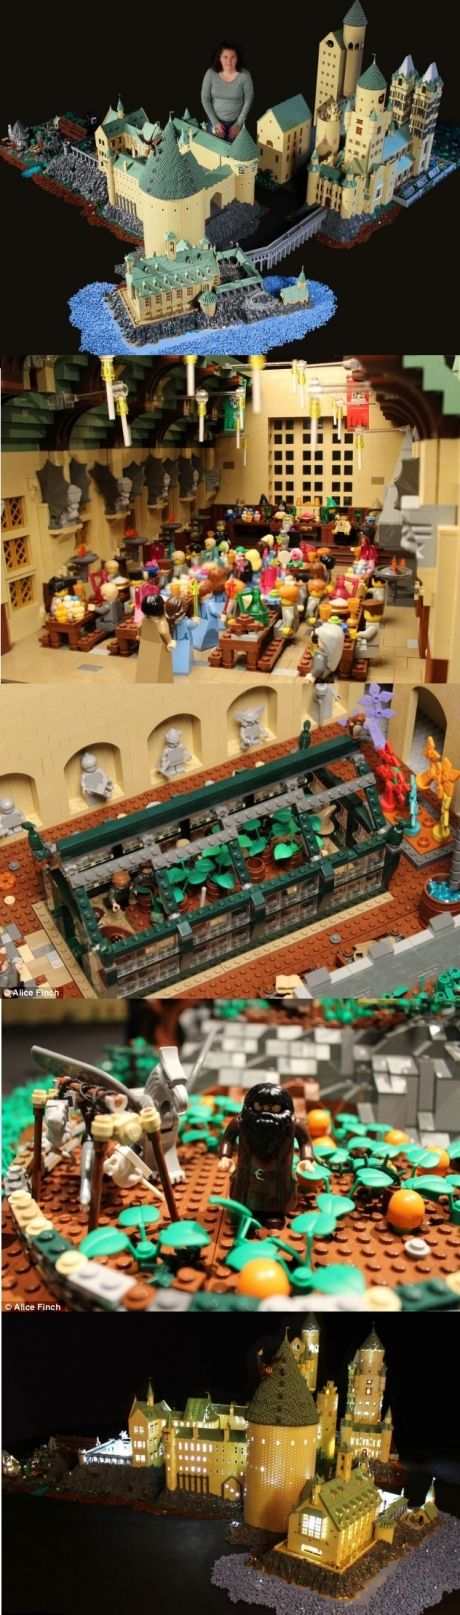 This woman built the entire world of Harry Potter in legos. We love it but wonder if this means she doesn't get out much...